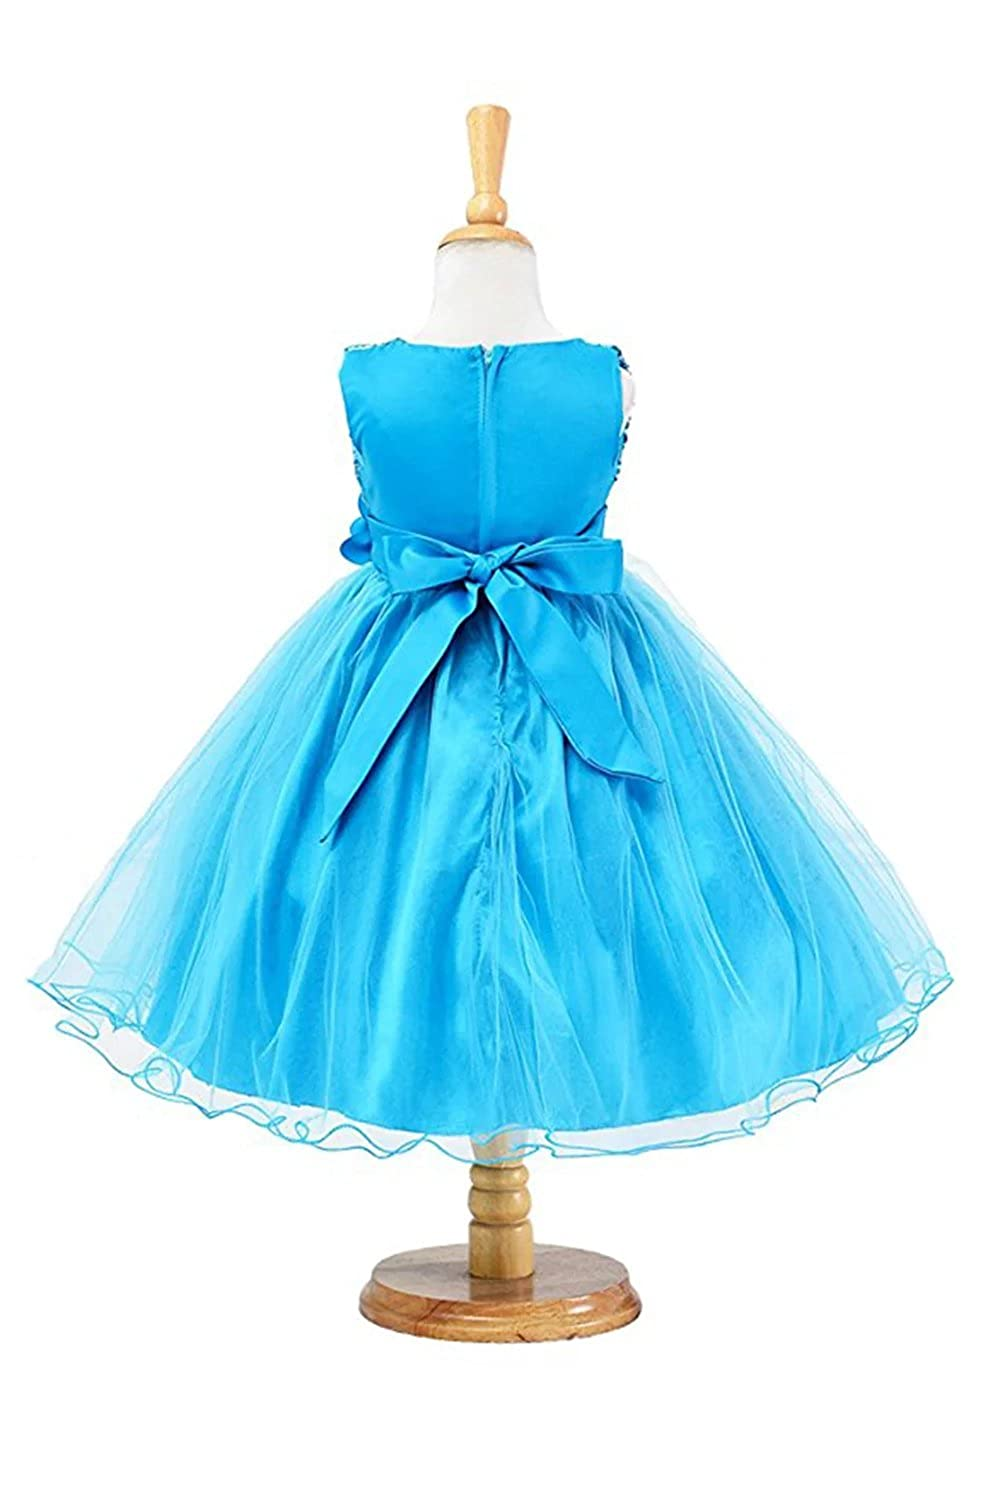 e0244a8e93 Amazon.com  ZAH Sequin Mesh Flower Party Wedding Gown Bridesmaid Tulle  Dress Little Girl  Clothing